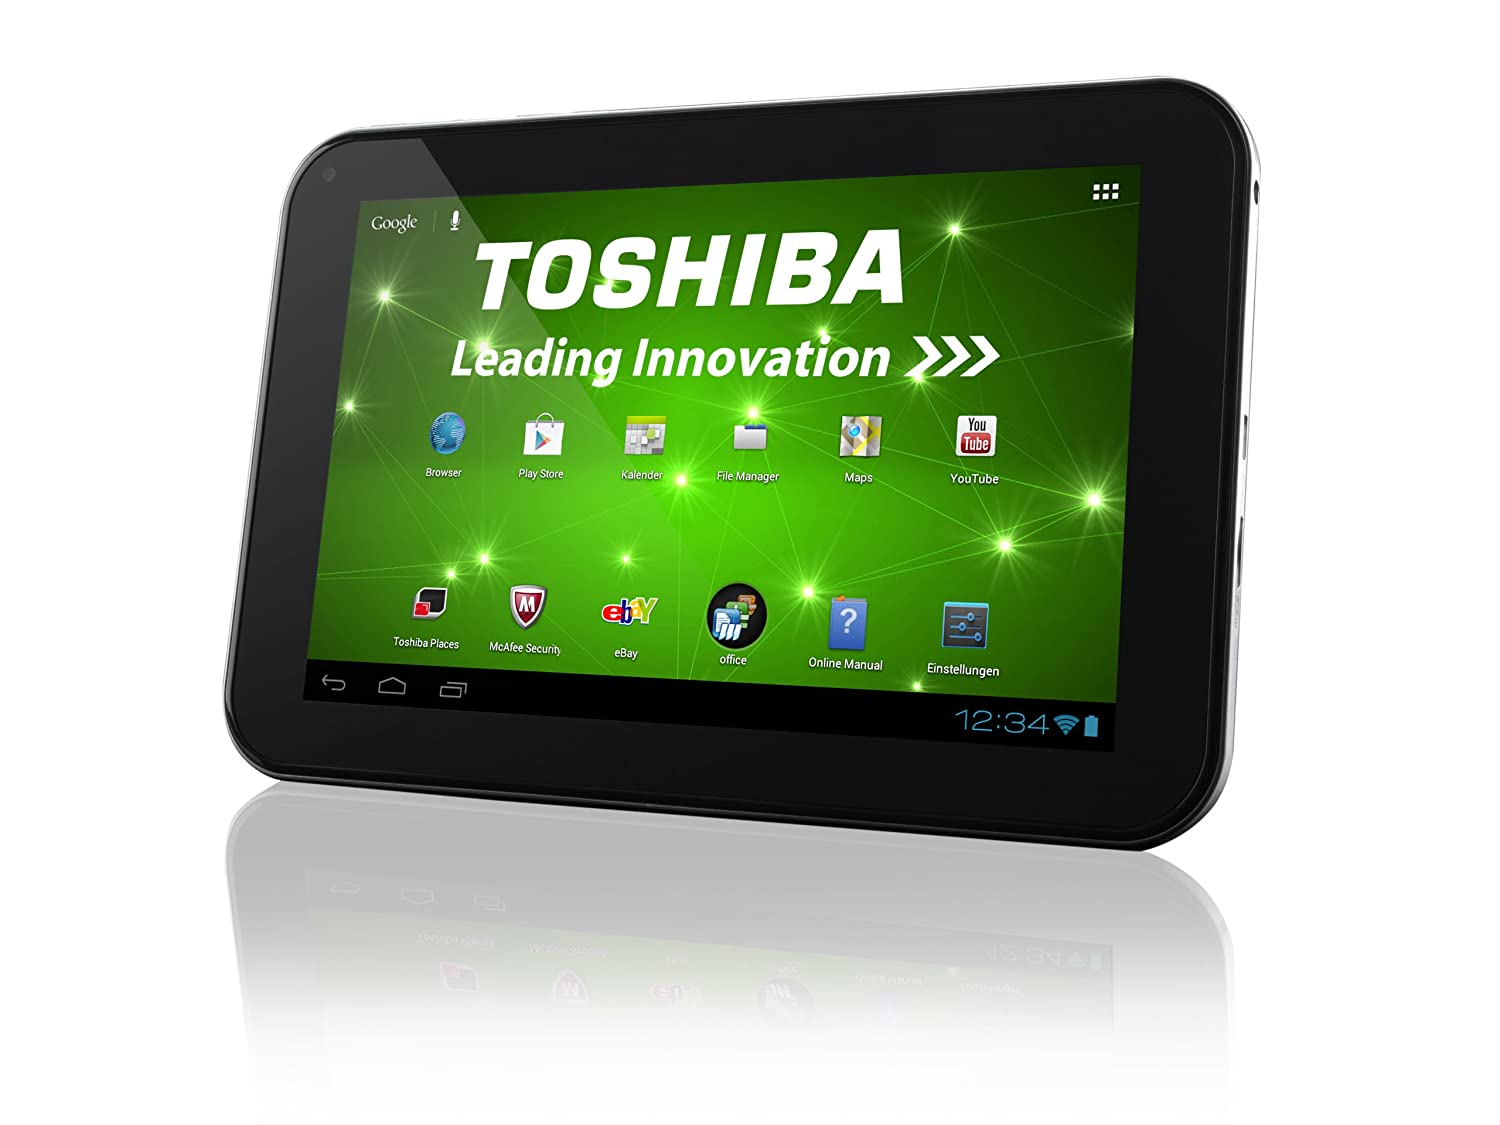 Toshiba AT270-101 32GB Plata - Tablet (Android, Pizarra, Android, Plata, Polímero de litio, 802.11b, 802.11g, 802.11n): Amazon.es: Informática